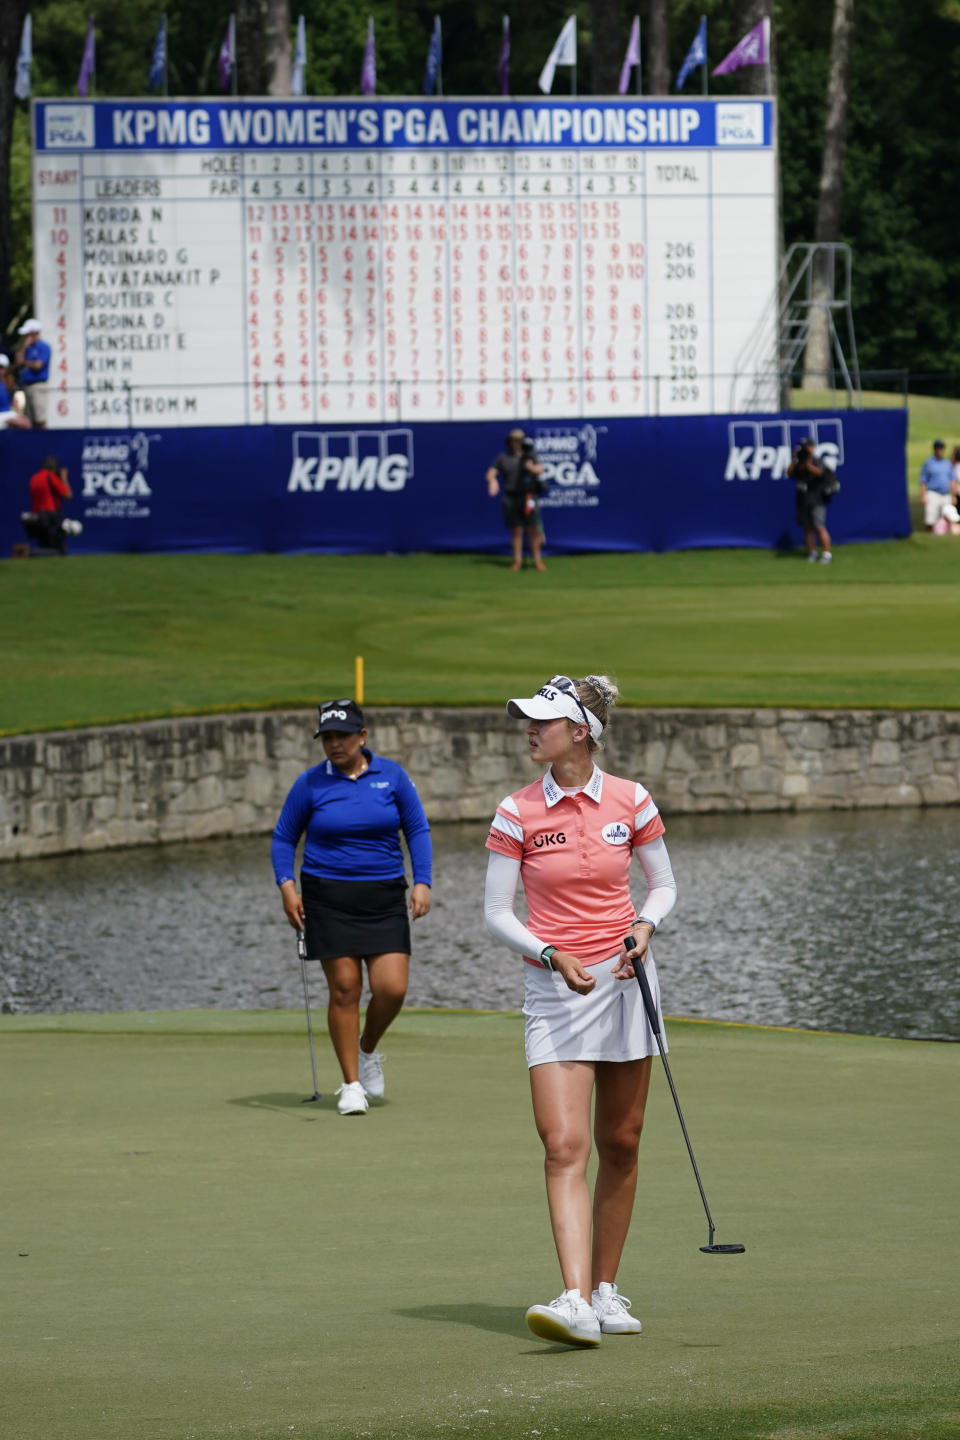 Nelly Korda of the U.S., right, and Lizette Salas, also of the U.S., walk off the course after finishing on the 18th hole, during the third round of play in the KPMG Women's PGA Championship golf tournament, Saturday, June 26, 2021, in Johns Creek, Ga. (AP Photo/John Bazemore)